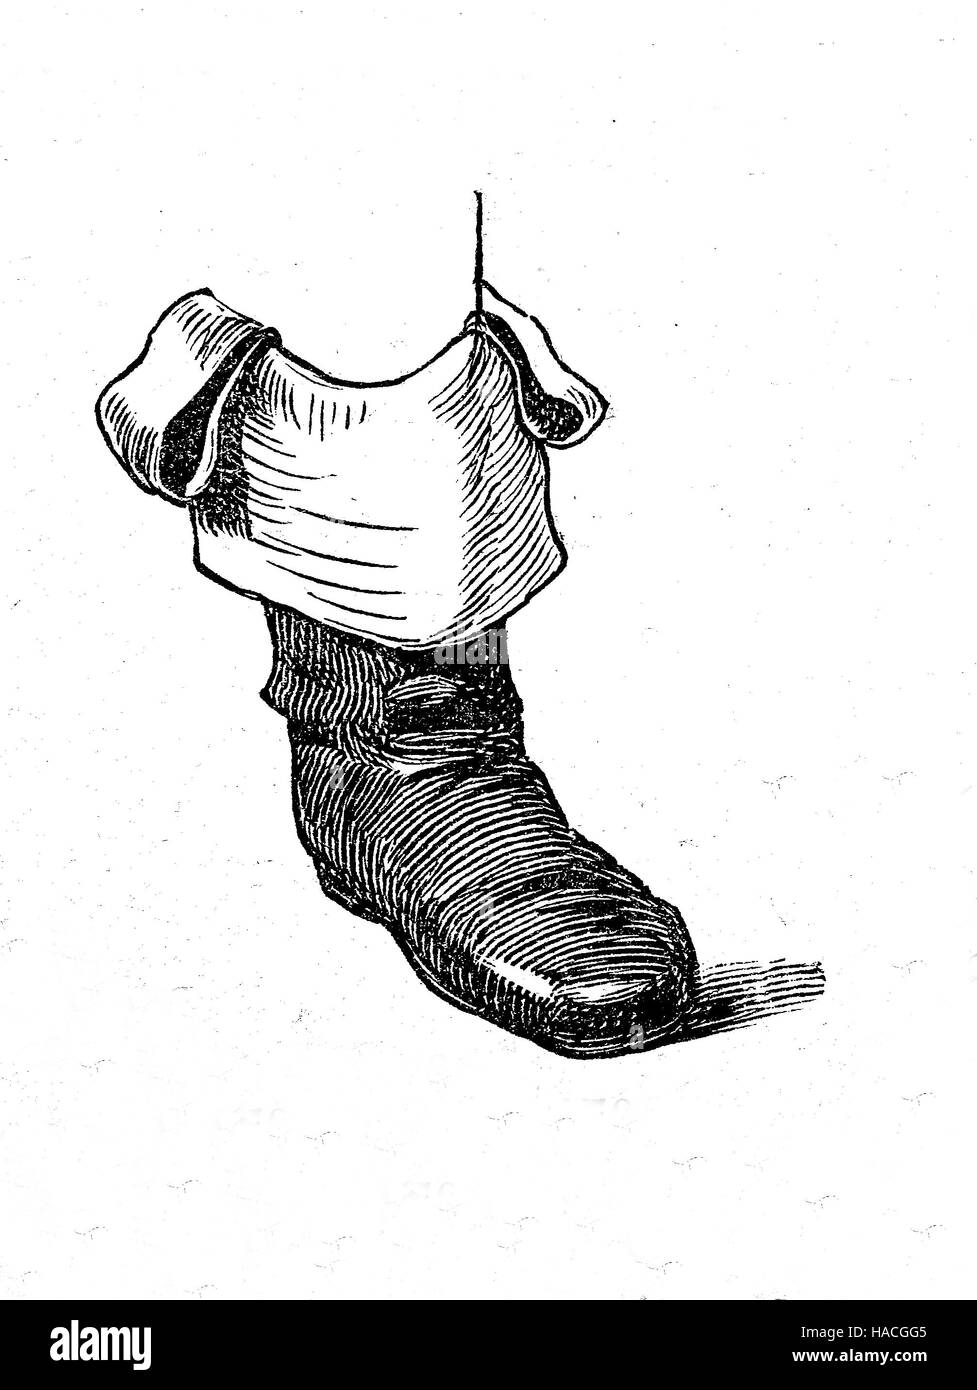 Shoes, fashion of the past. Boots, France, 1793, historic illustration, woodcut - Stock Image